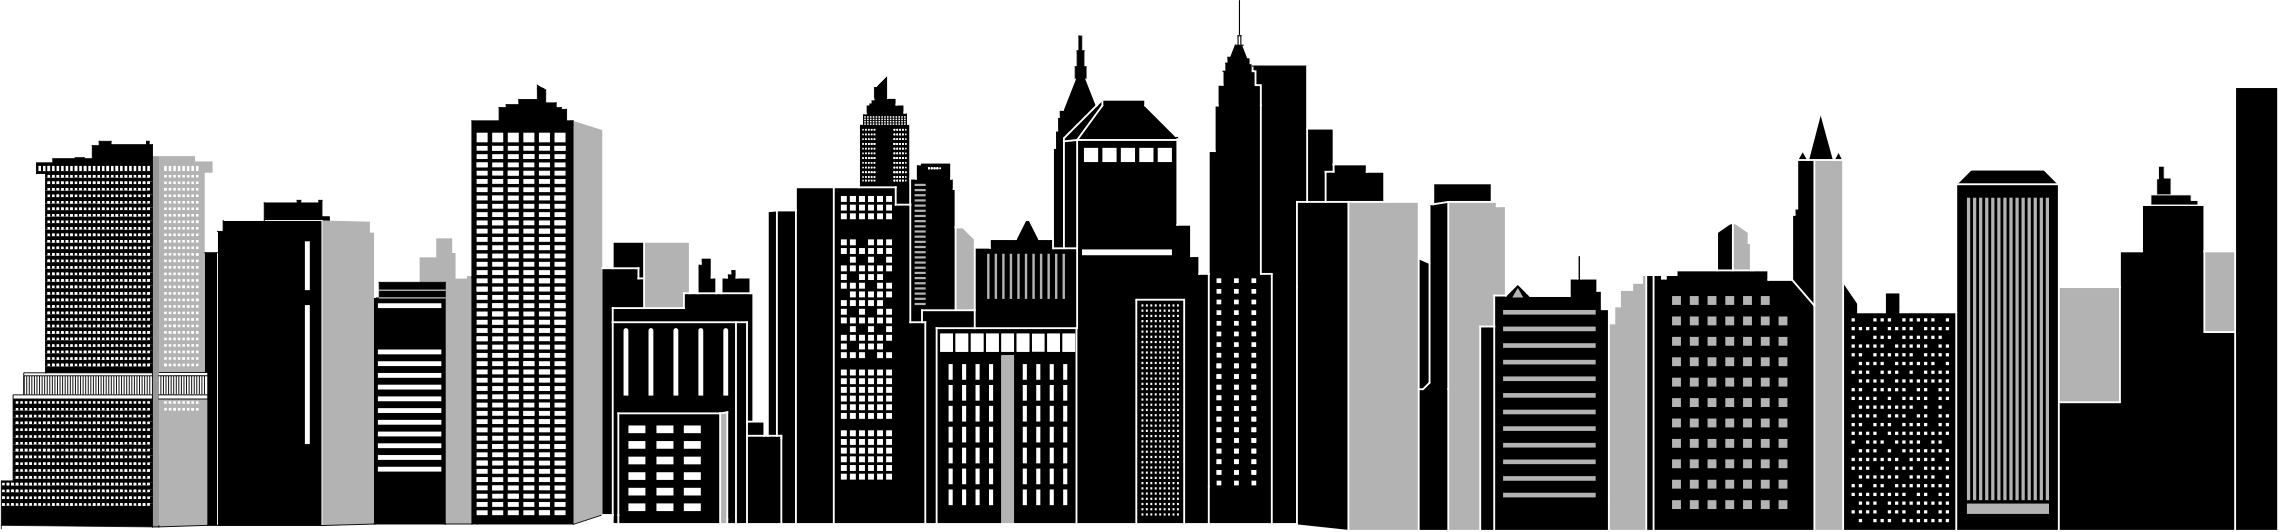 Cityscape clipart #11, Download drawings